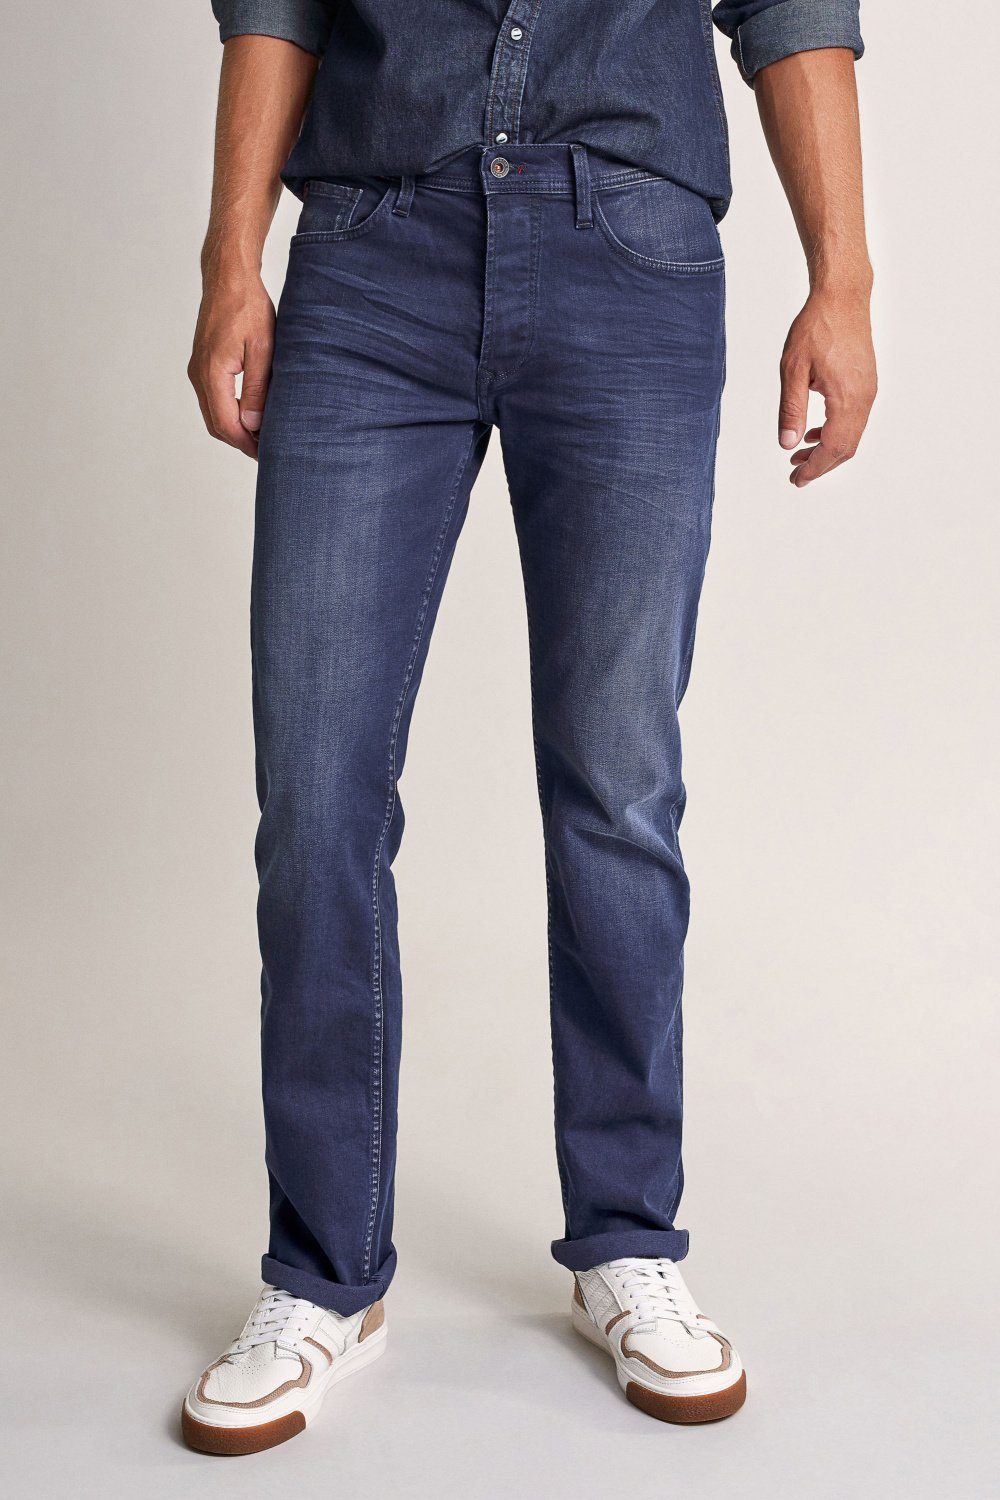 Navarro straight jeans in dark denim - Salsa